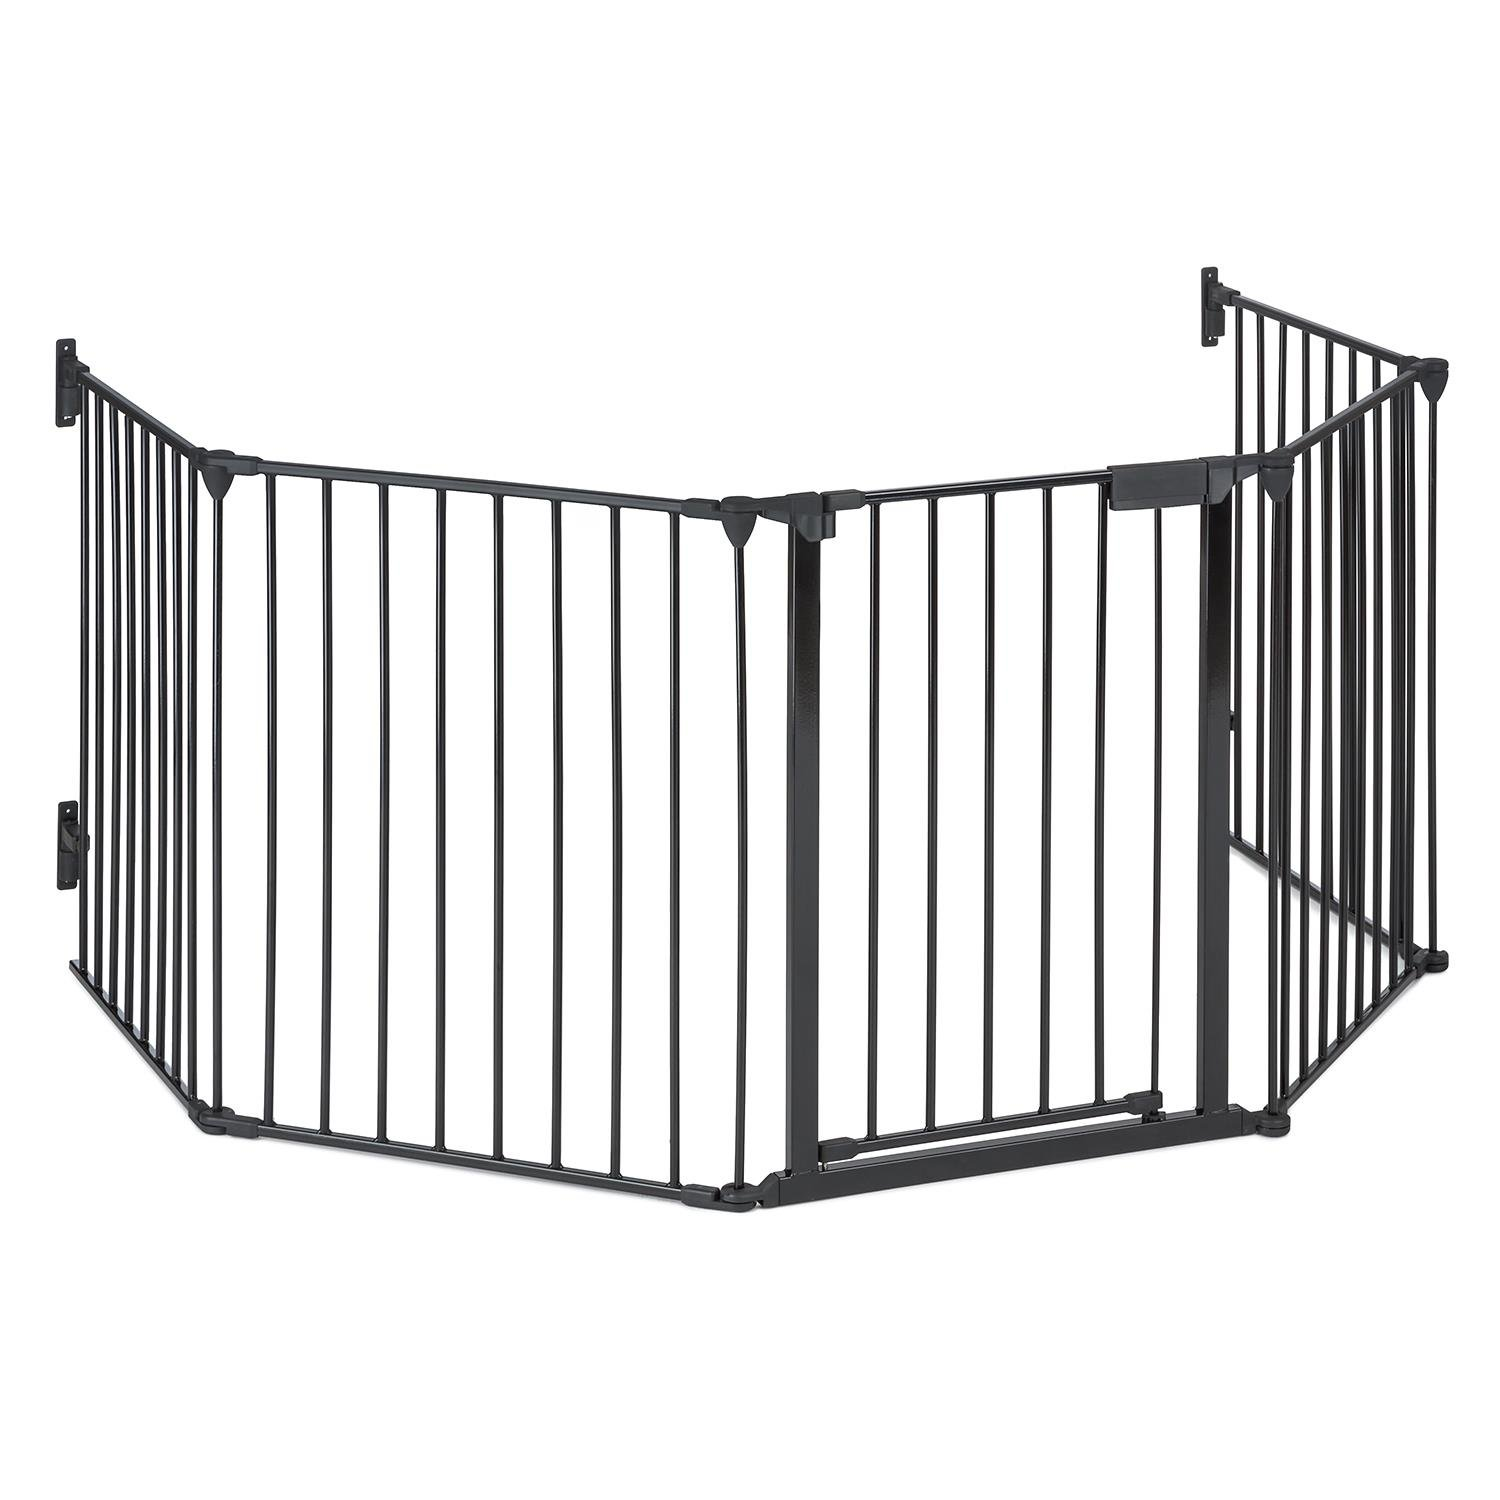 oneConcept Safety First Fireplace Guard Protective Grid 3 m Metal Design Practical Safety Clasps to Quickly Lock Door in Place Parts Required for Fixing Included Five Moveable Parts for Easy Positioning and Adjustment Black